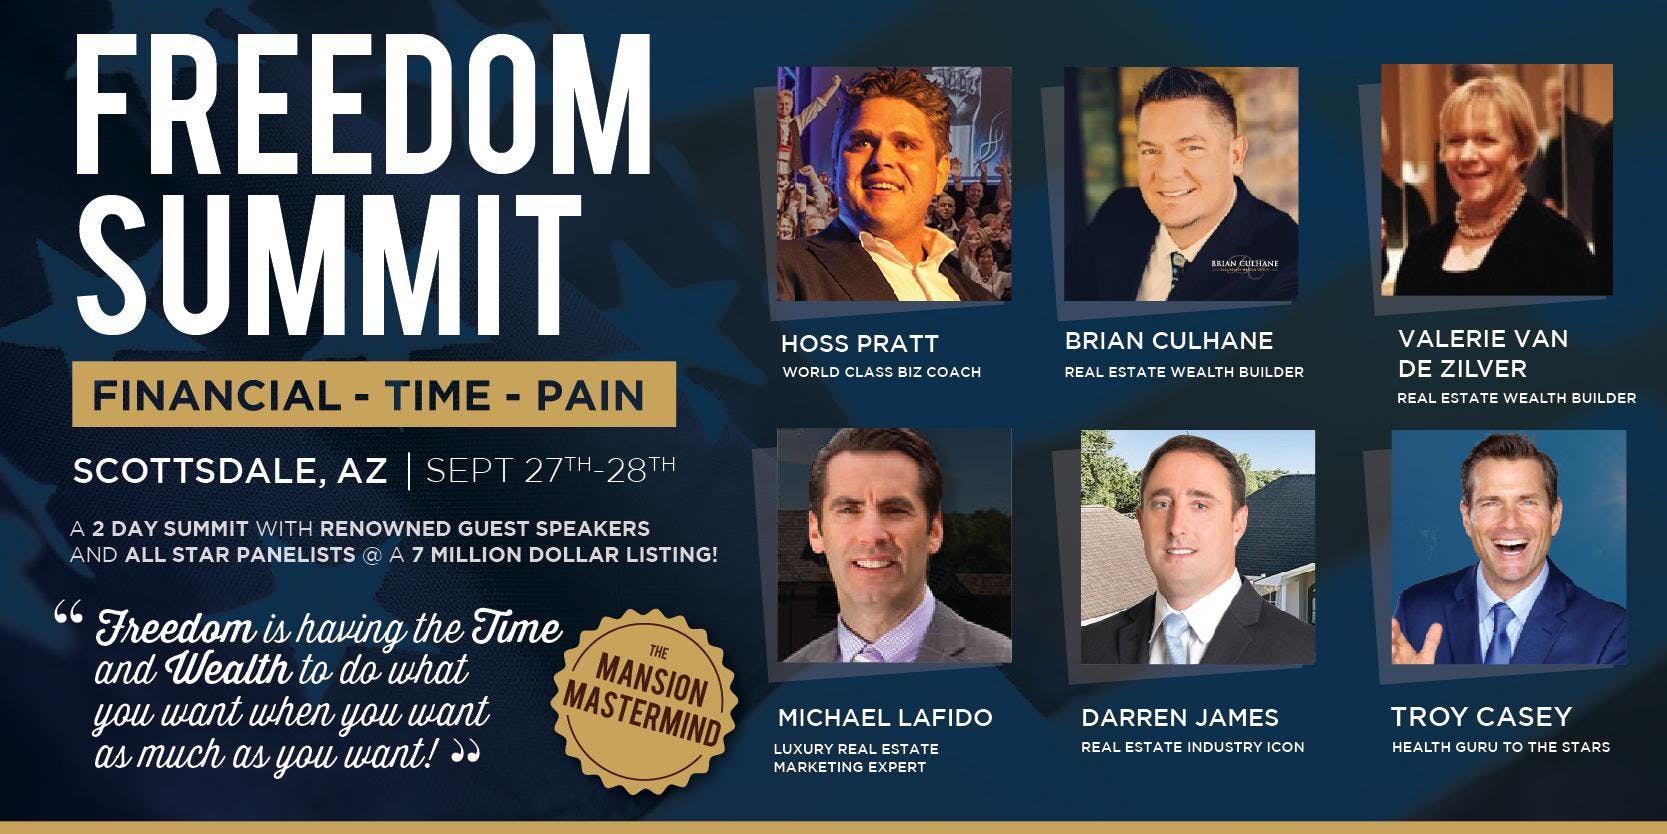 Freedom Summit - Mansion Mastermind - A Real Estate Industry Event